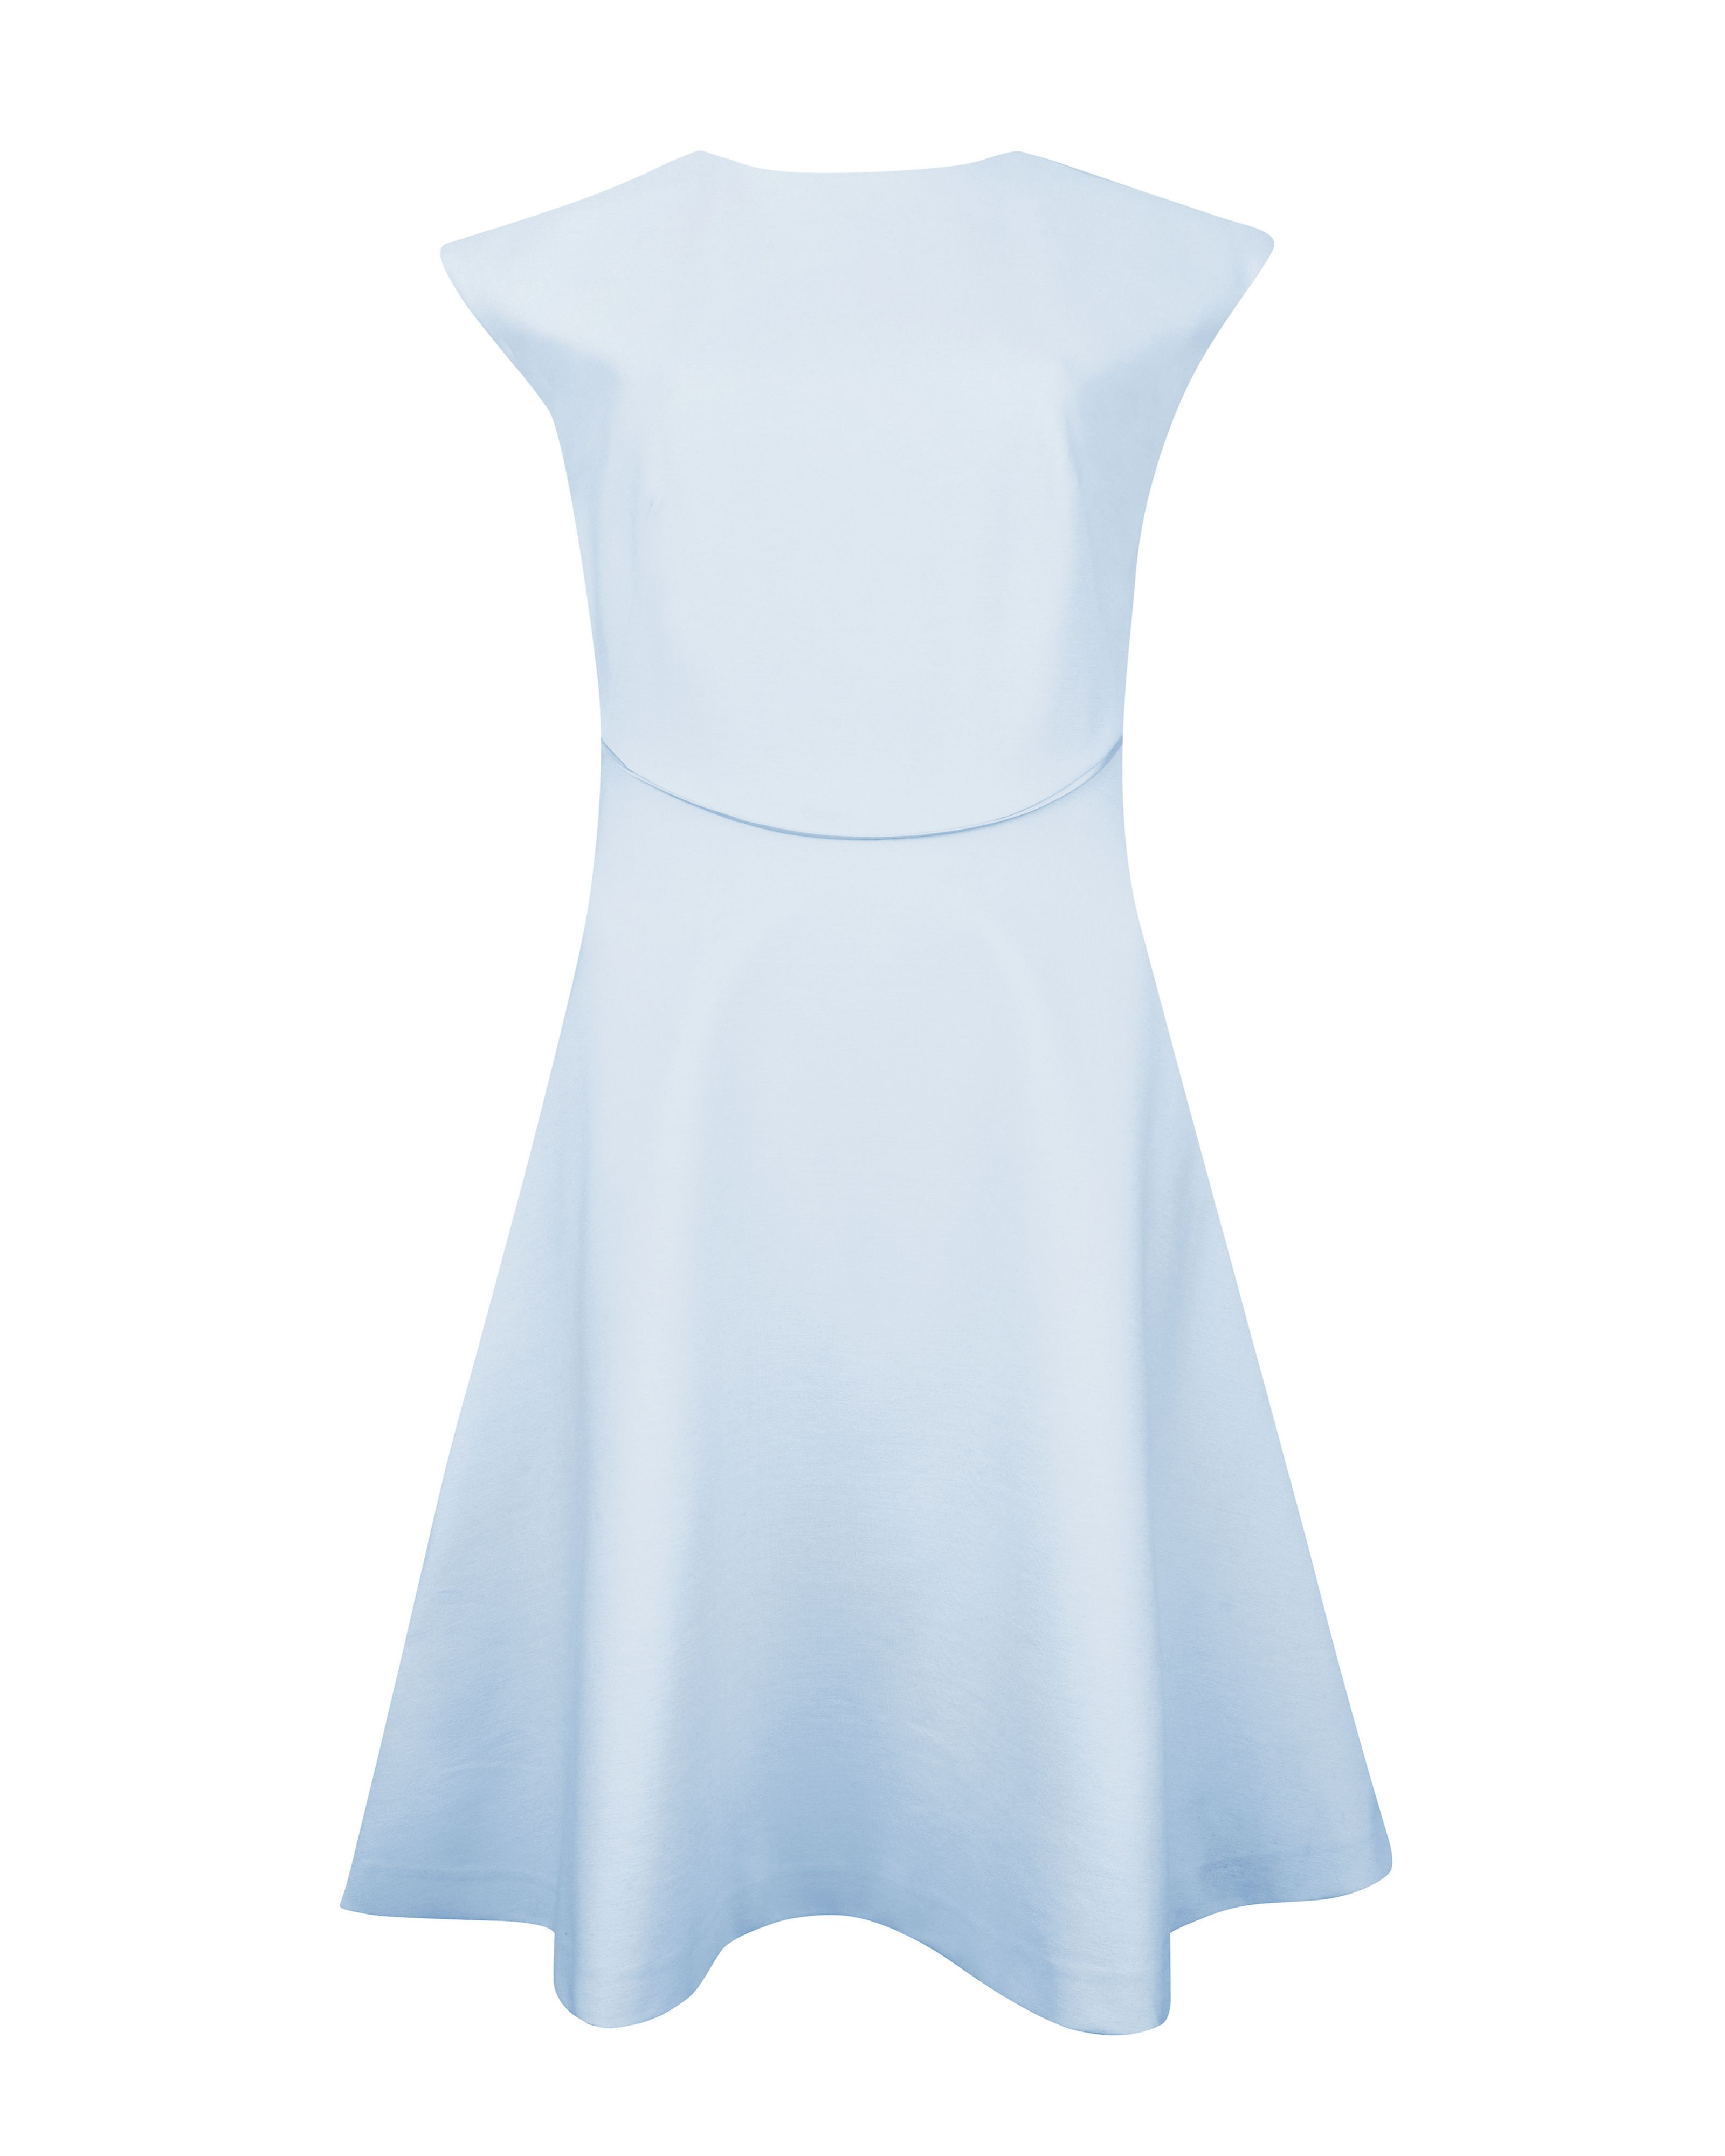 Claudie seam detail dress